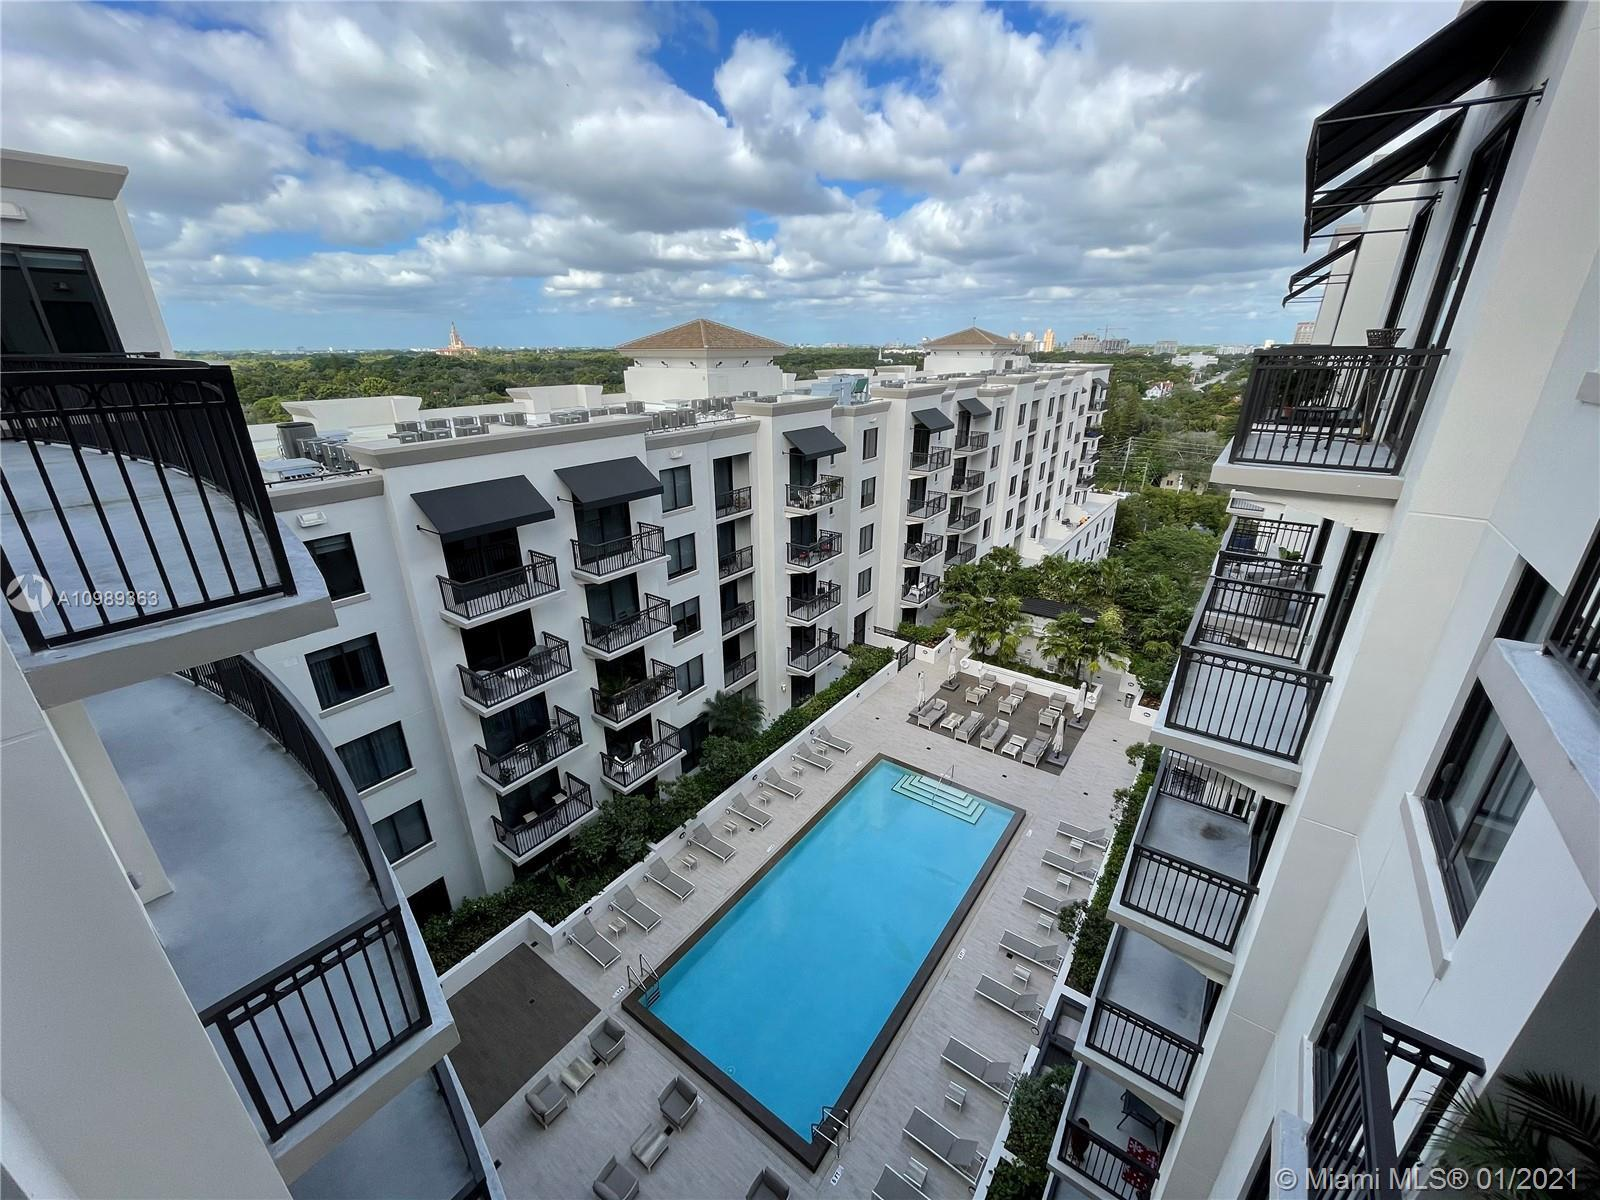 Centrally located in Miami's favorite neighborhood, this luxury Upper Penthouse 2 bed 2,5 bath offer